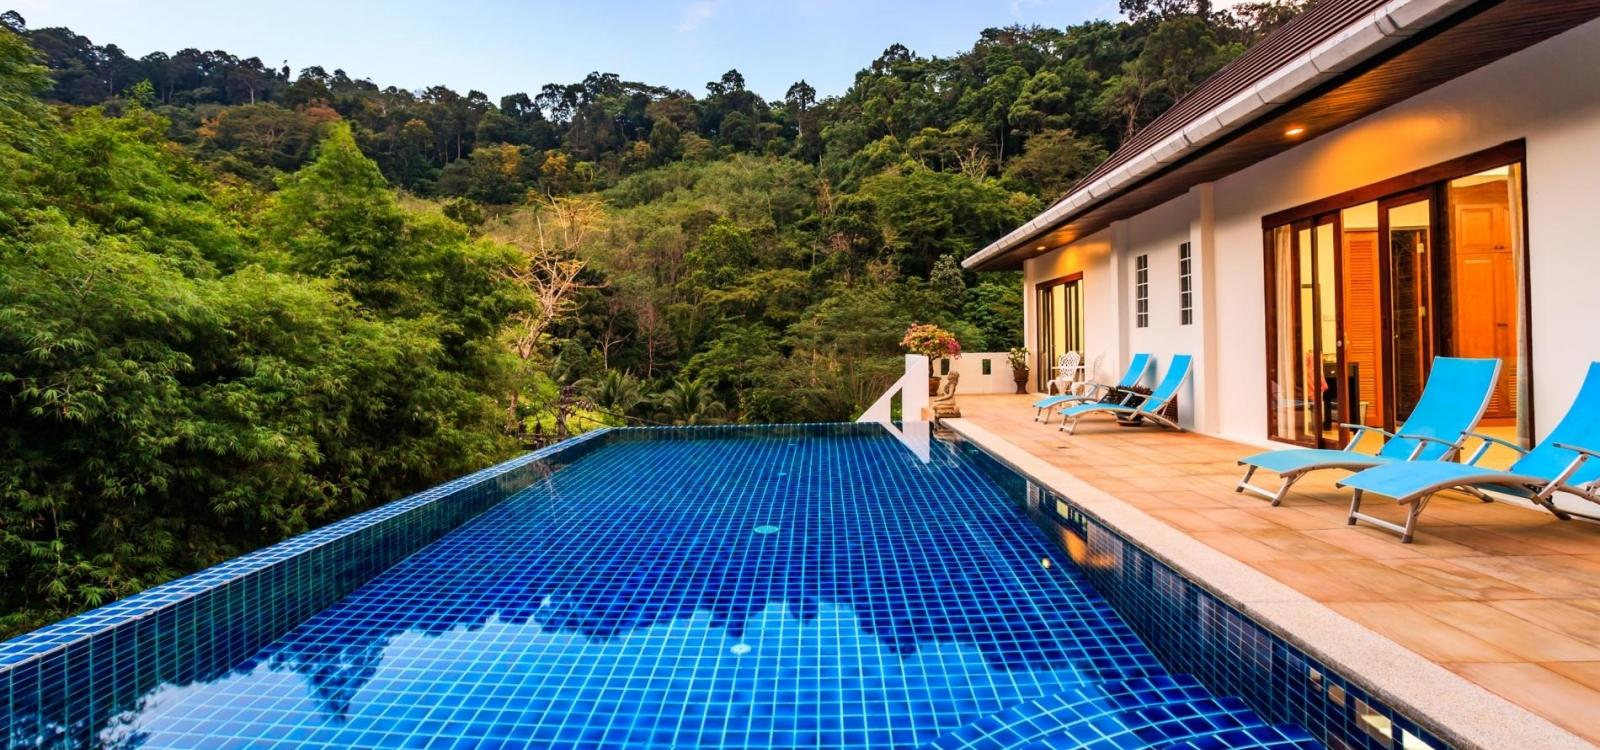 BBK -  Private pool waterfall jungle villa in Kathu - FREE MOTORBIKE